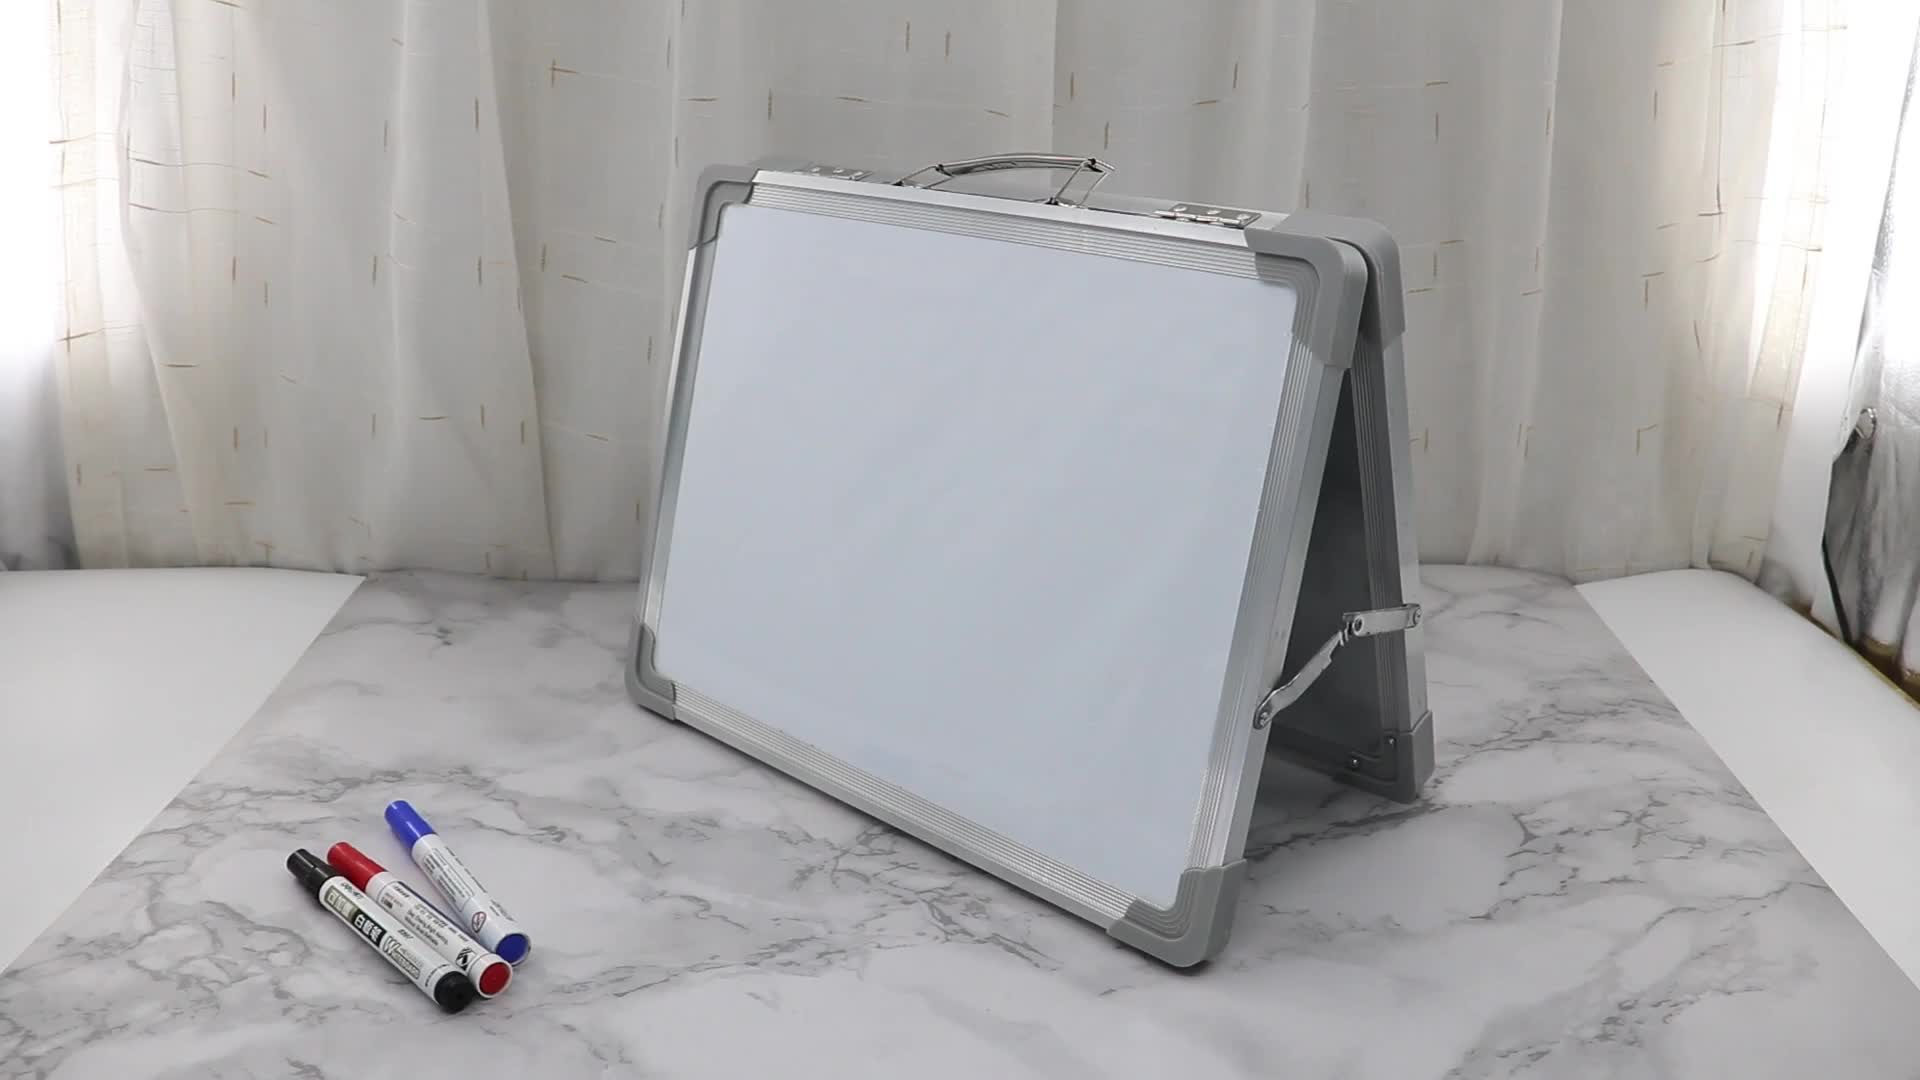 Educational tabletop dry eraser board Wideny home kindergarten supply adjustable two sides honeycomb lapboard whiteboard